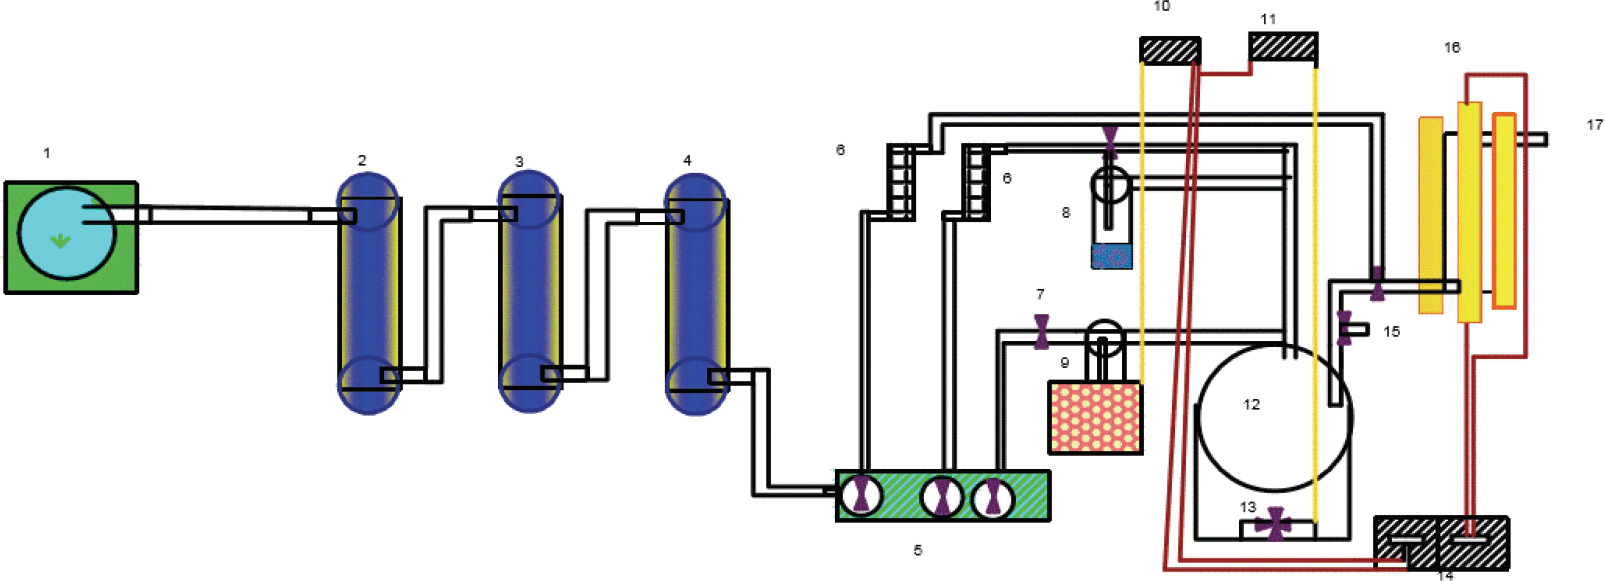 Removal Of Toluene Vapors From The Polluted Air With Modified Tank Schematic Symbol Figure 2 Laboratory Setup Note 1 Pump Silicagel 3 Active Carbon 4 Silicage 5 Branch Wall Boxes 6 Rotameter